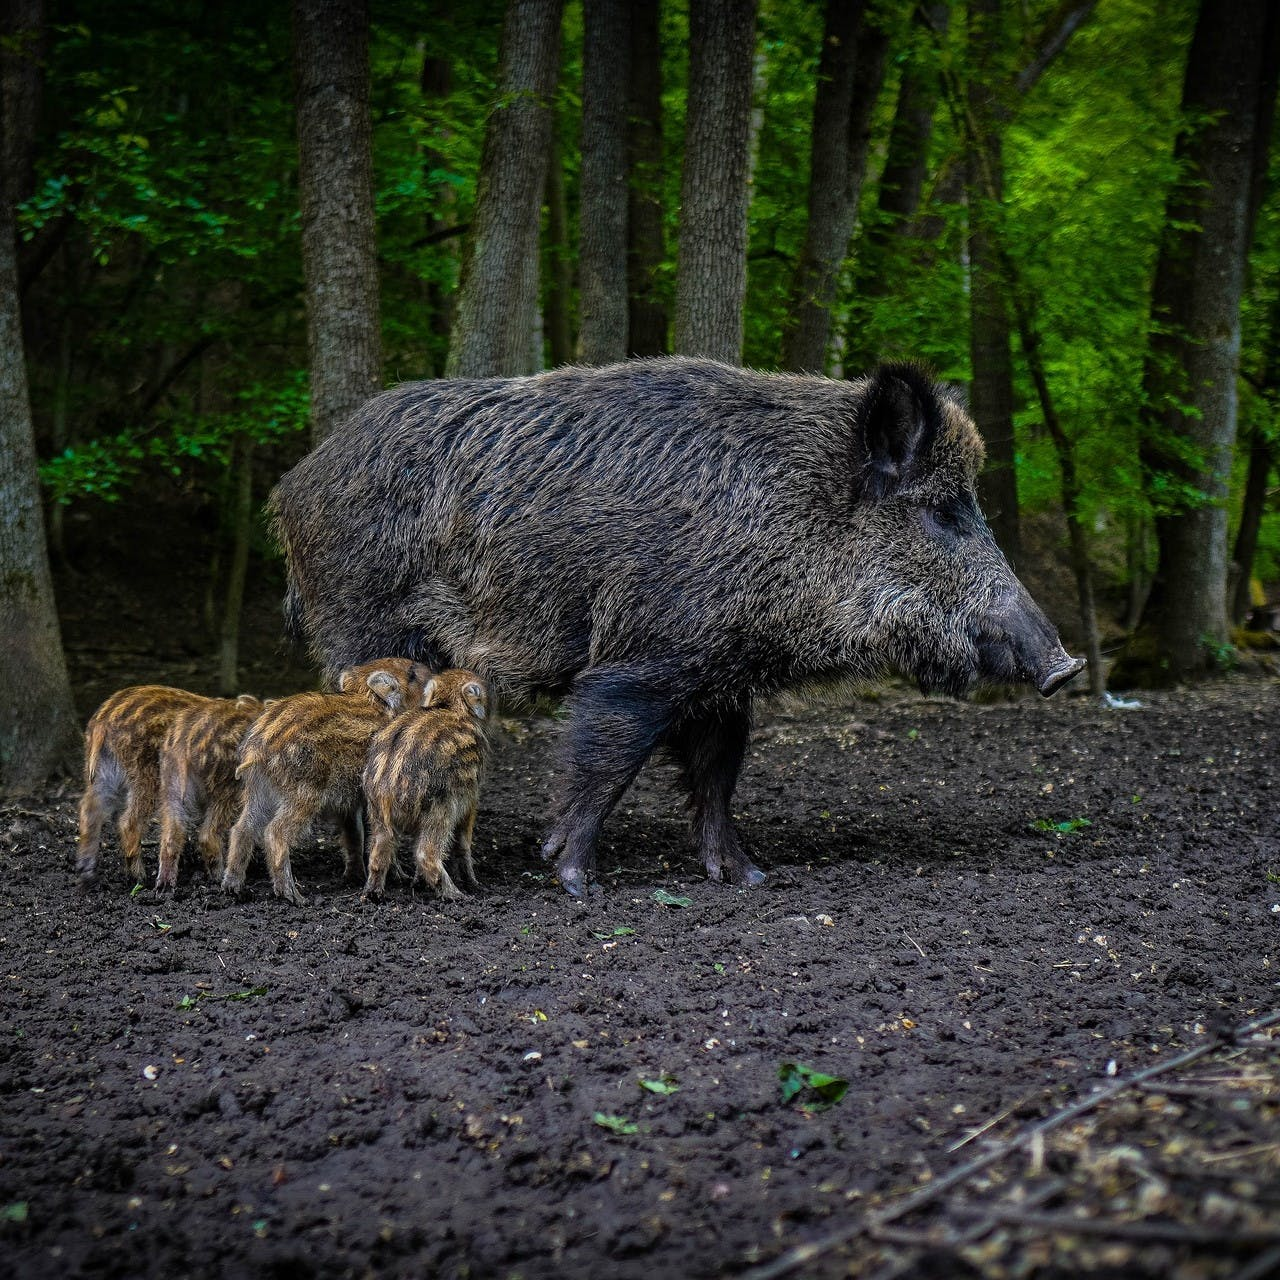 A female boar with her sows